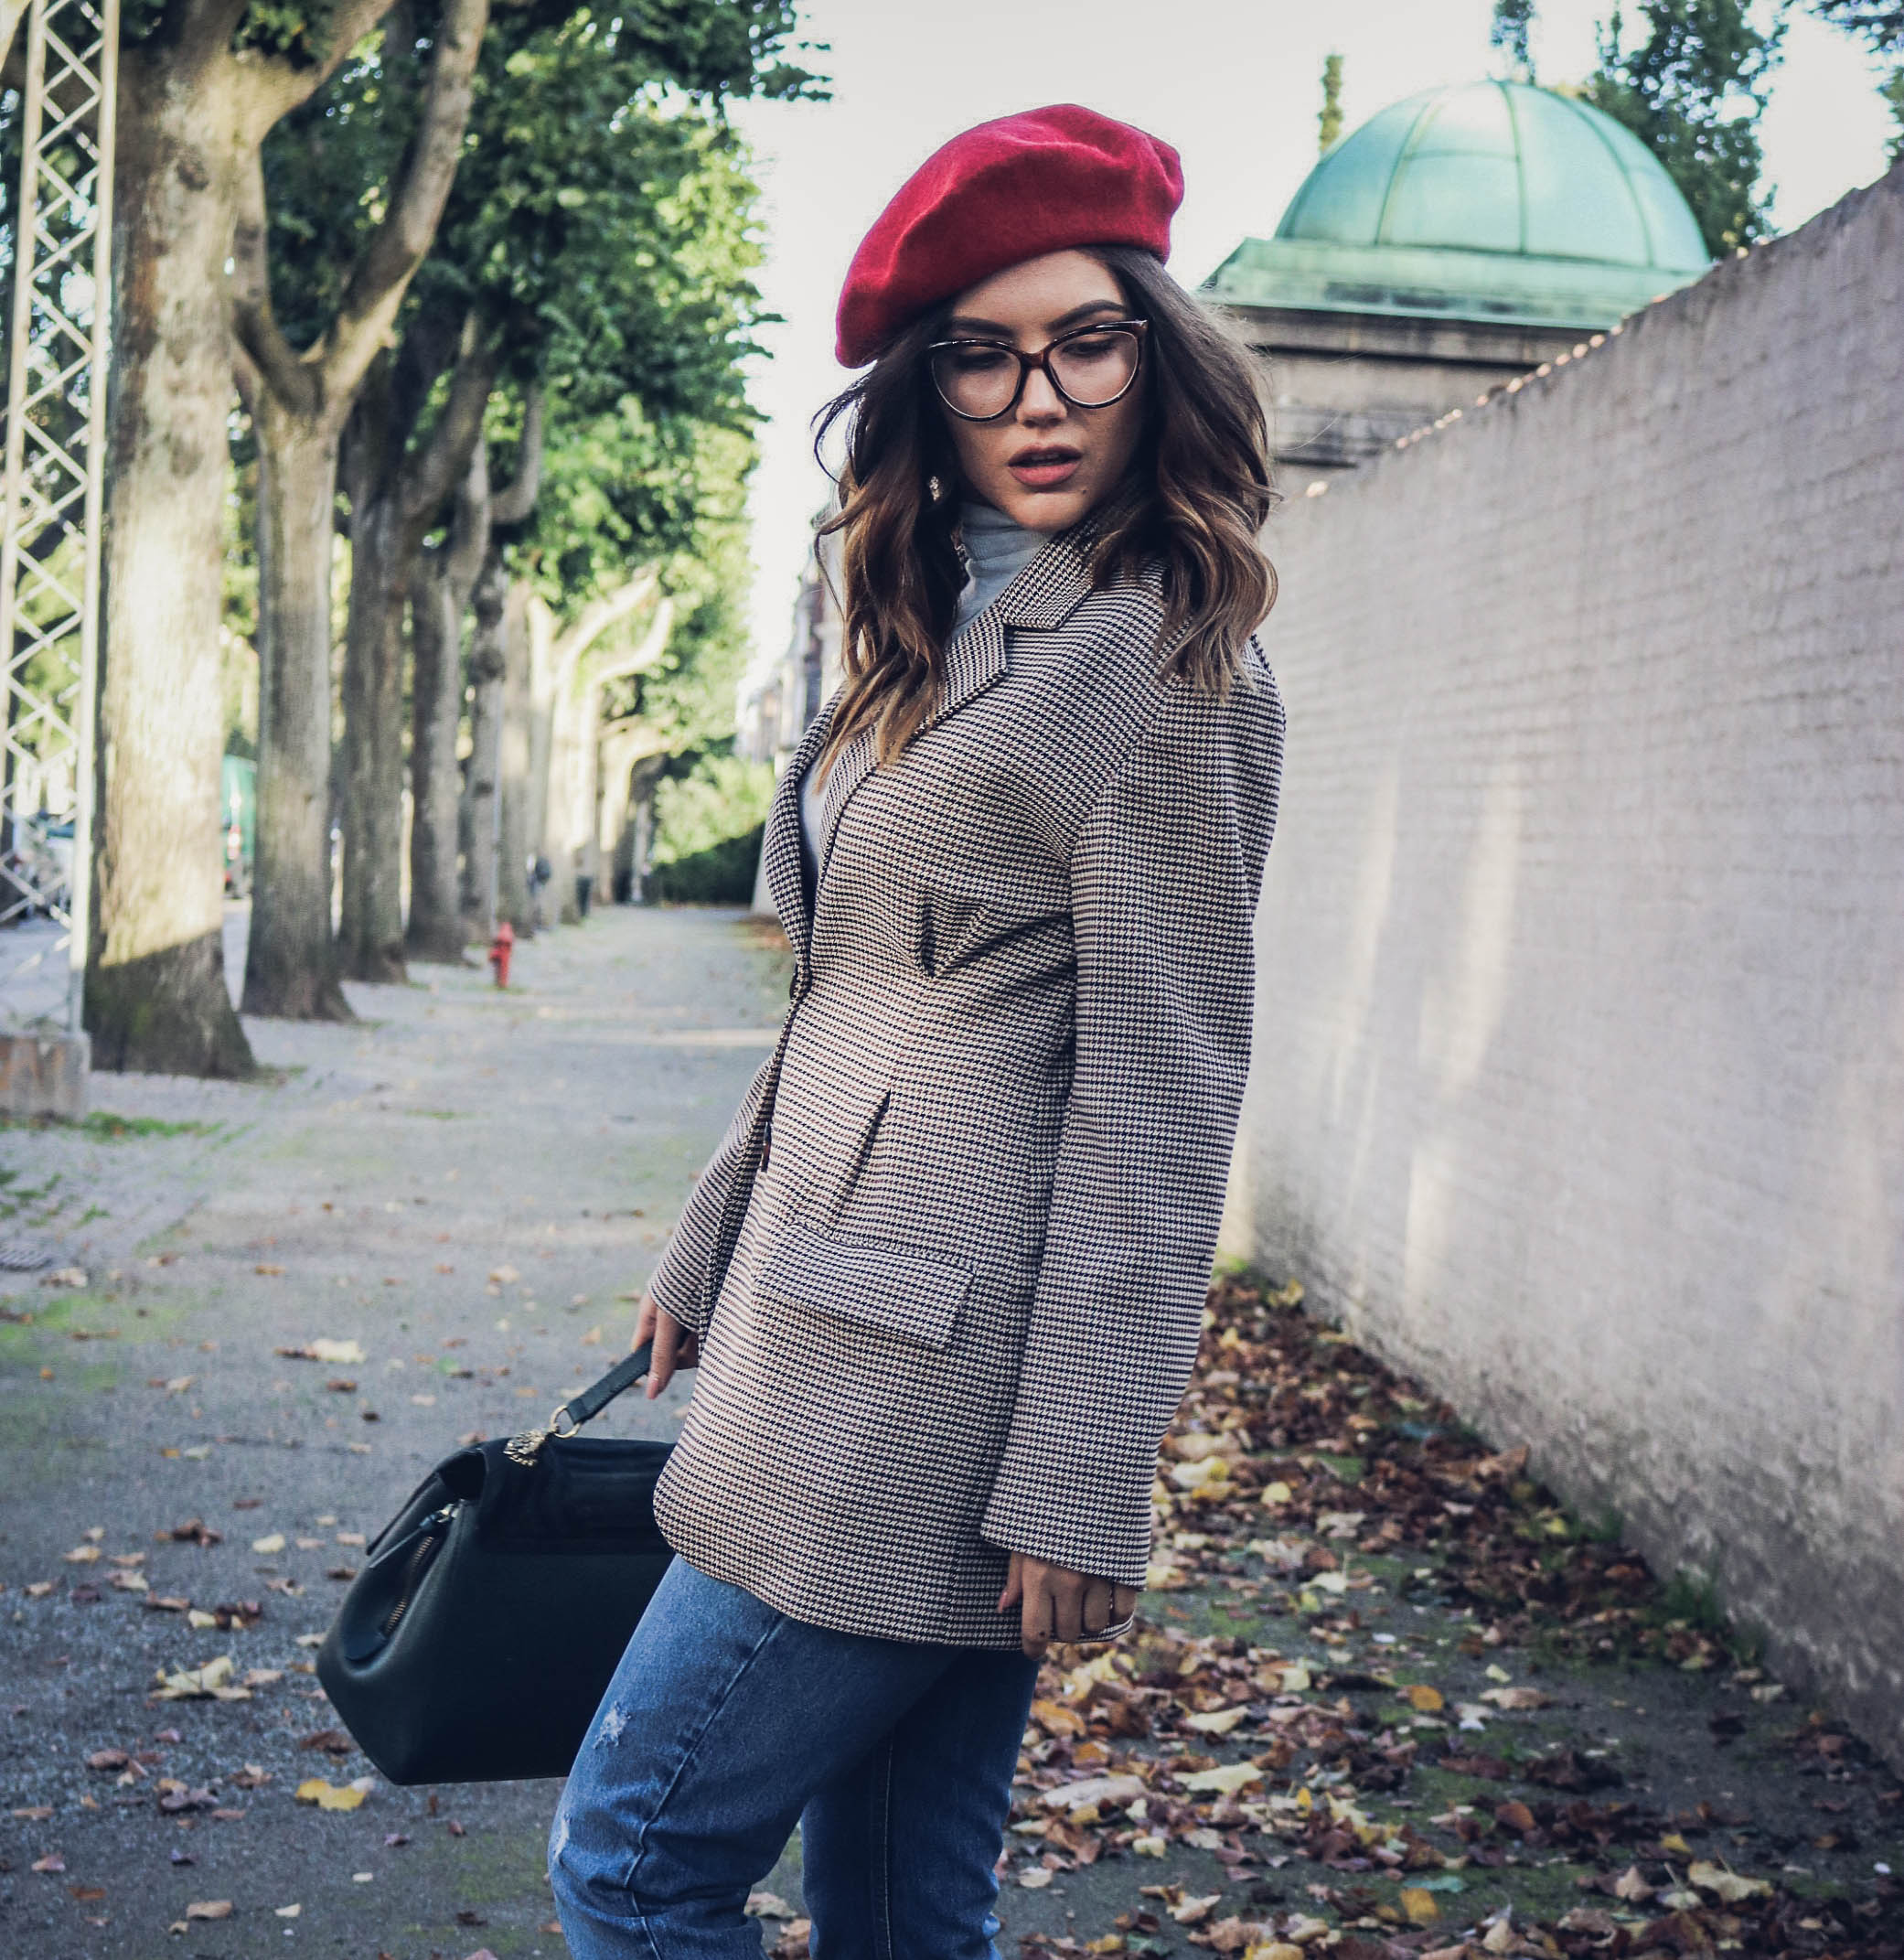 Funny Hat Caps Beanies Skullies Fedoras Berets Dress: Trend Alert. How To Wear A Beret Hat This Fall?